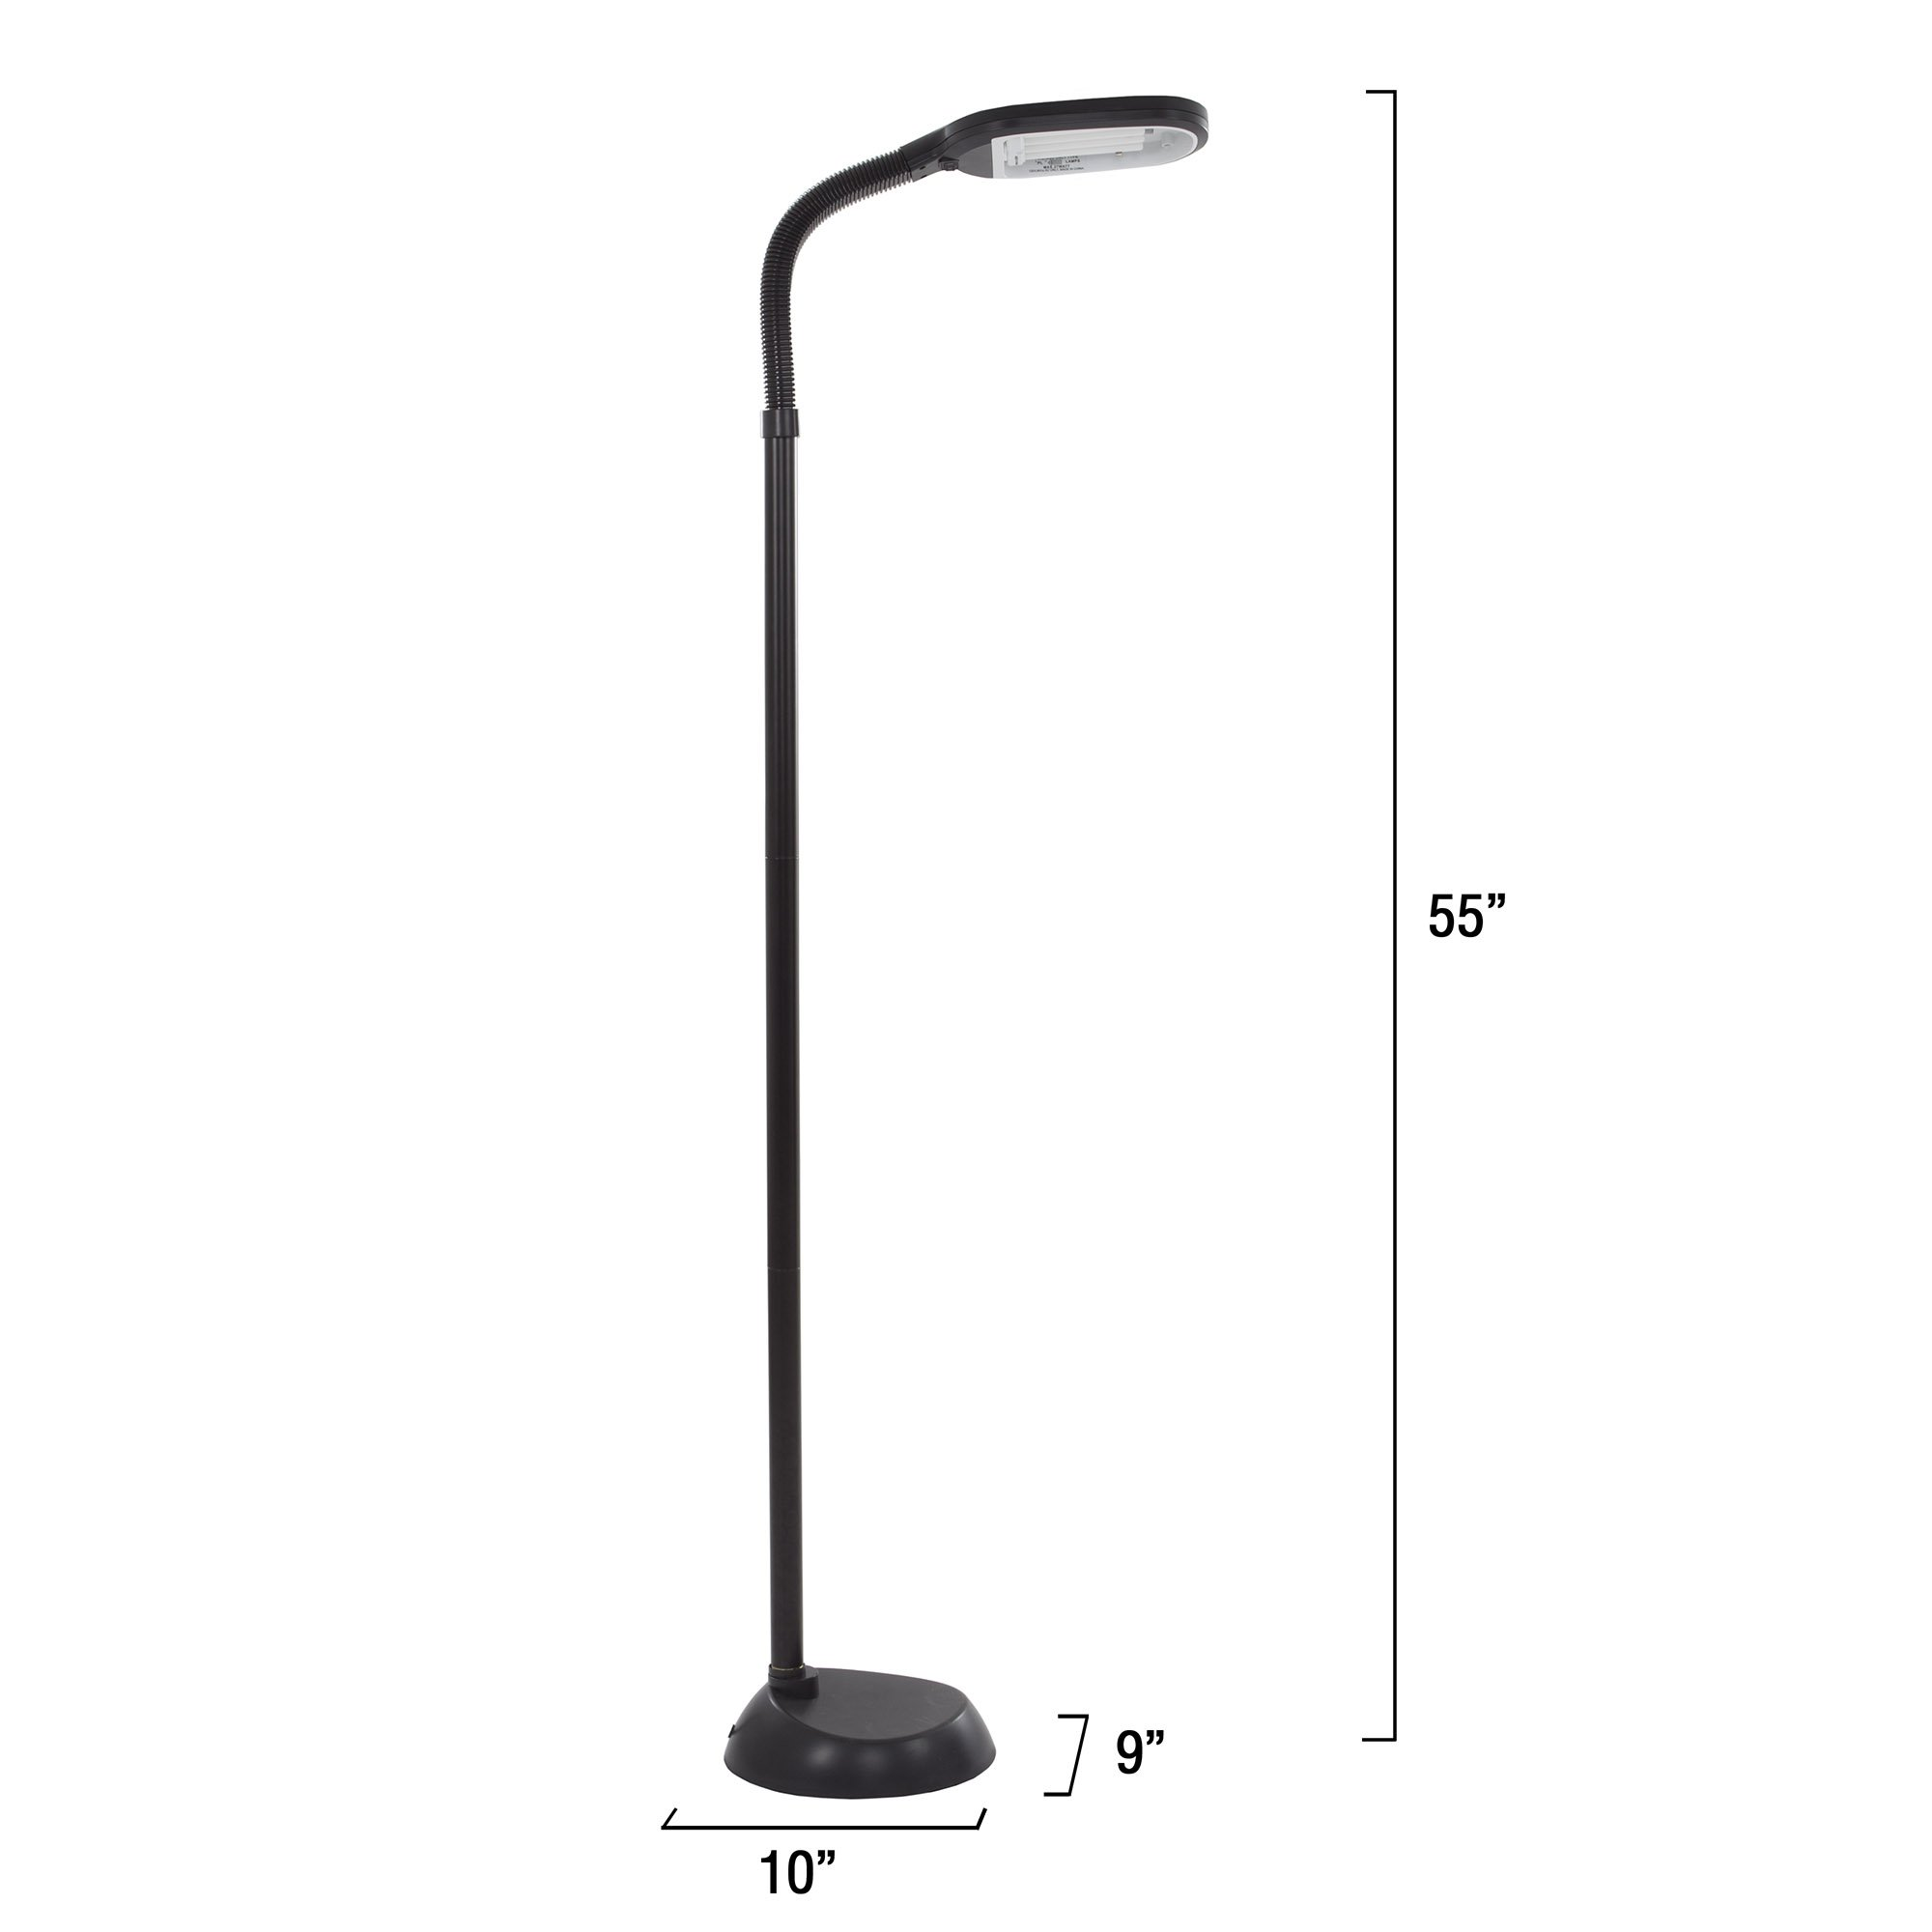 Lavish Home (72-0890) 5 Feet Sunlight Floor Lamp With Adjustable Gooseneck - Black by Lavish Home (Image #2)